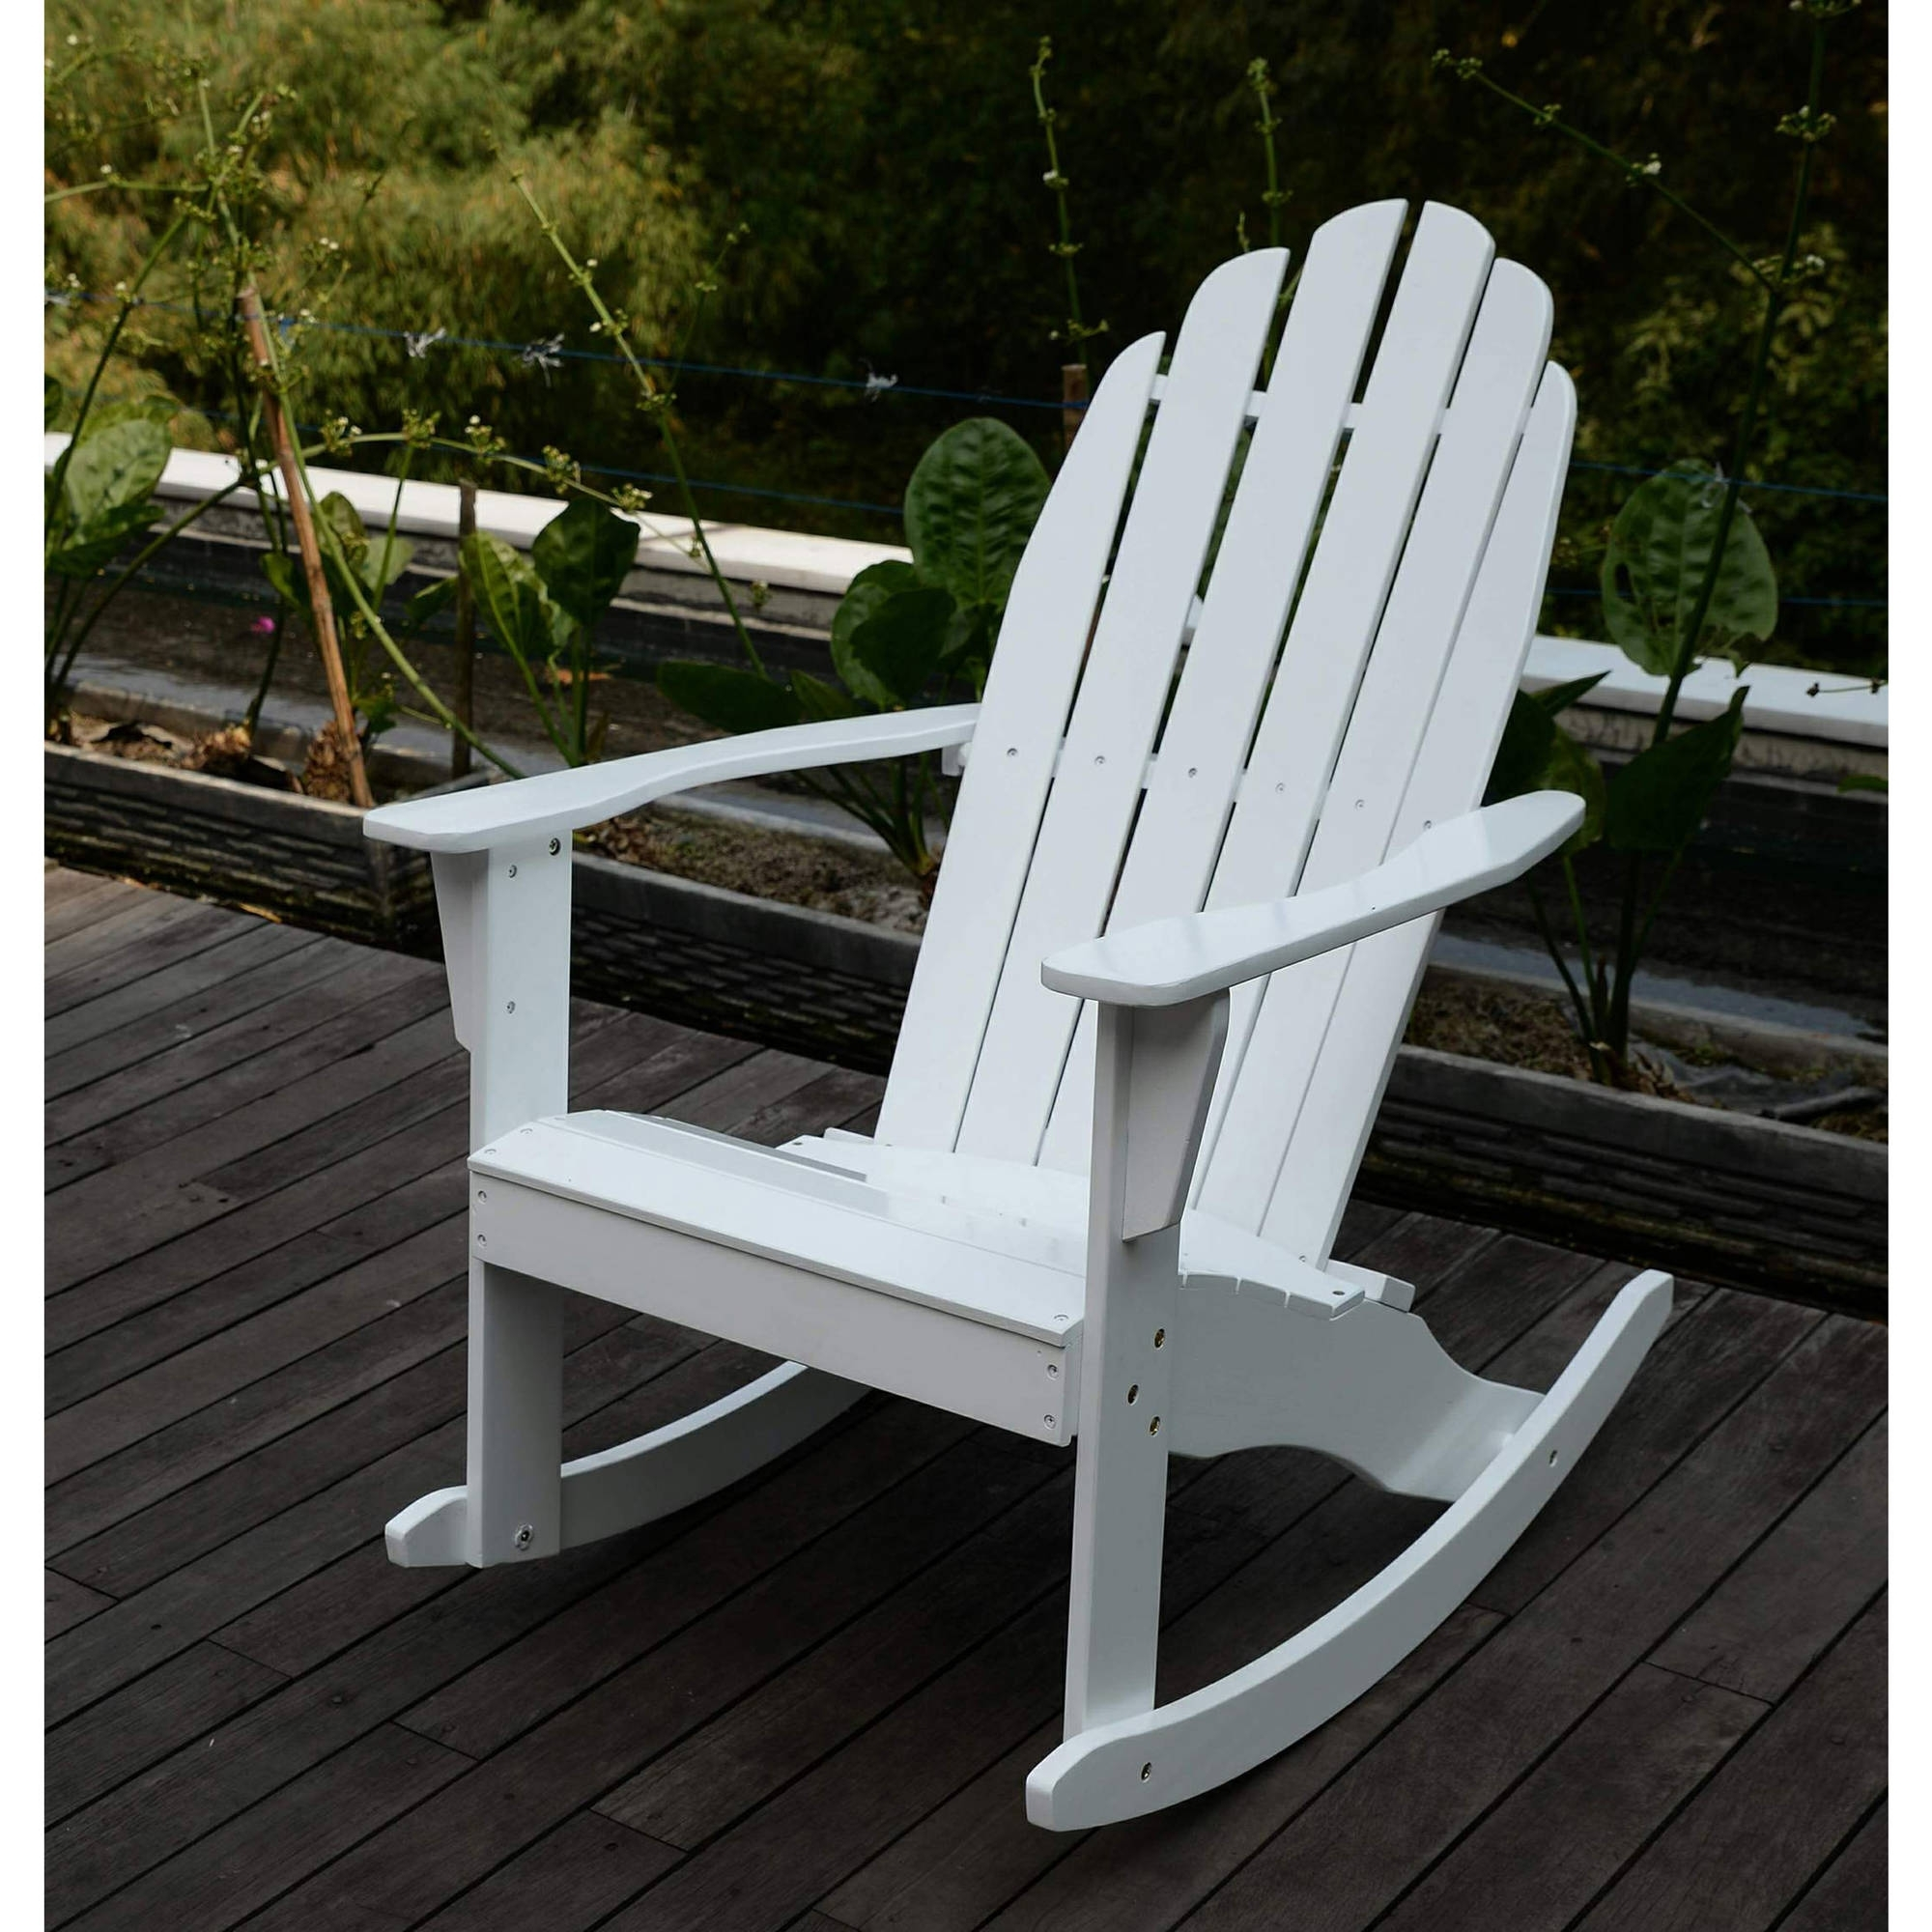 Adirondack Rocking Chair, White – Walmart In 2019 Walmart Rocking Chairs (Gallery 12 of 20)